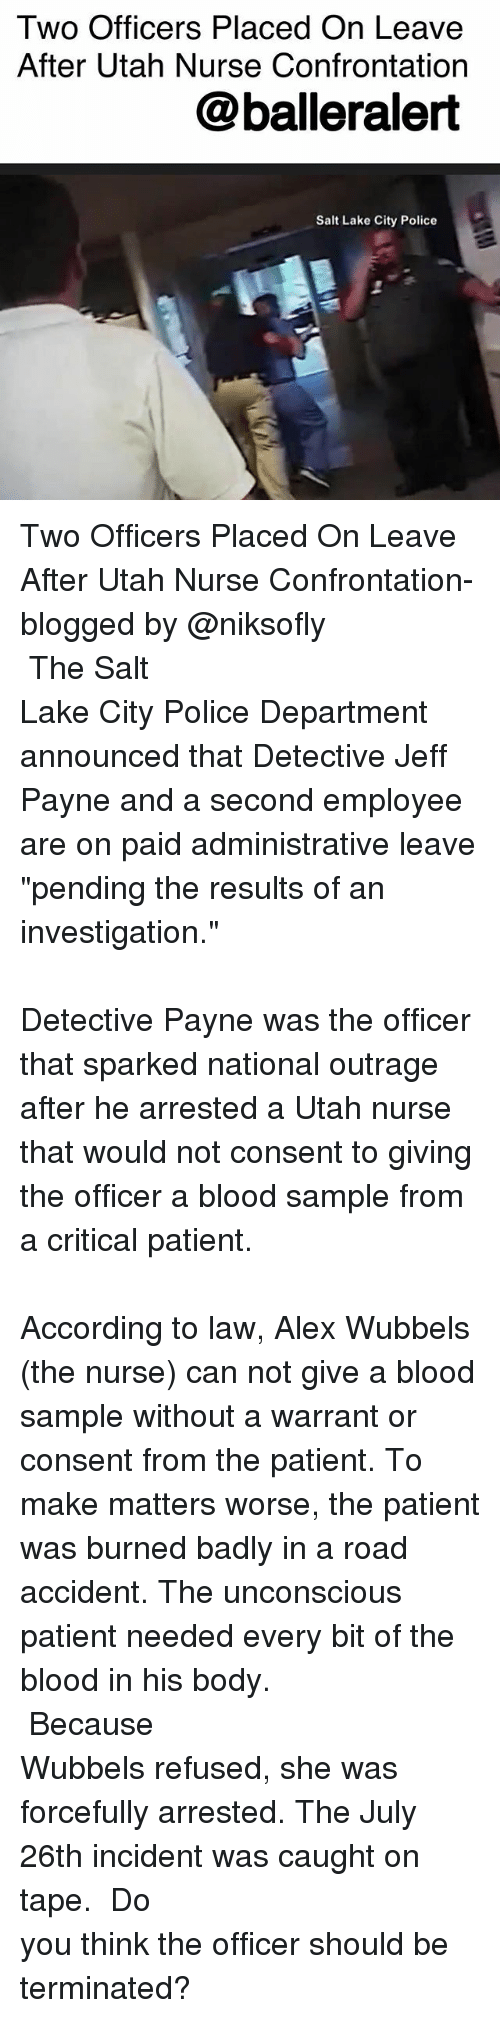 "Bloods, Memes, and Police: Two Officers Placed On Leave  After Utah Nurse Confrontation  @balleralert  Salt Lake City Police Two Officers Placed On Leave After Utah Nurse Confrontation- blogged by @niksofly ⠀⠀⠀⠀⠀⠀⠀⠀⠀⠀⠀⠀⠀⠀⠀⠀⠀⠀⠀⠀⠀⠀⠀⠀⠀⠀⠀⠀⠀⠀⠀⠀⠀⠀⠀⠀ The Salt Lake City Police Department announced that Detective Jeff Payne and a second employee are on paid administrative leave ""pending the results of an investigation."" ⠀⠀⠀⠀⠀⠀⠀⠀⠀⠀⠀⠀⠀⠀⠀⠀⠀⠀⠀⠀⠀⠀⠀⠀⠀⠀⠀⠀⠀⠀⠀⠀⠀⠀⠀⠀ Detective Payne was the officer that sparked national outrage after he arrested a Utah nurse that would not consent to giving the officer a blood sample from a critical patient. ⠀⠀⠀⠀⠀⠀⠀⠀⠀⠀⠀⠀⠀⠀⠀⠀⠀⠀⠀⠀⠀⠀⠀⠀⠀⠀⠀⠀⠀⠀⠀⠀⠀⠀⠀⠀ According to law, Alex Wubbels (the nurse) can not give a blood sample without a warrant or consent from the patient. To make matters worse, the patient was burned badly in a road accident. The unconscious patient needed every bit of the blood in his body. ⠀⠀⠀⠀⠀⠀⠀⠀⠀⠀⠀⠀⠀⠀⠀⠀⠀⠀⠀⠀⠀⠀⠀⠀⠀⠀⠀⠀⠀⠀⠀⠀⠀⠀⠀⠀ Because Wubbels refused, she was forcefully arrested. The July 26th incident was caught on tape. ⠀⠀⠀⠀⠀⠀⠀⠀⠀⠀⠀⠀⠀⠀⠀⠀⠀⠀⠀⠀⠀⠀⠀⠀⠀⠀⠀⠀⠀⠀⠀⠀⠀⠀⠀⠀ Do you think the officer should be terminated?"